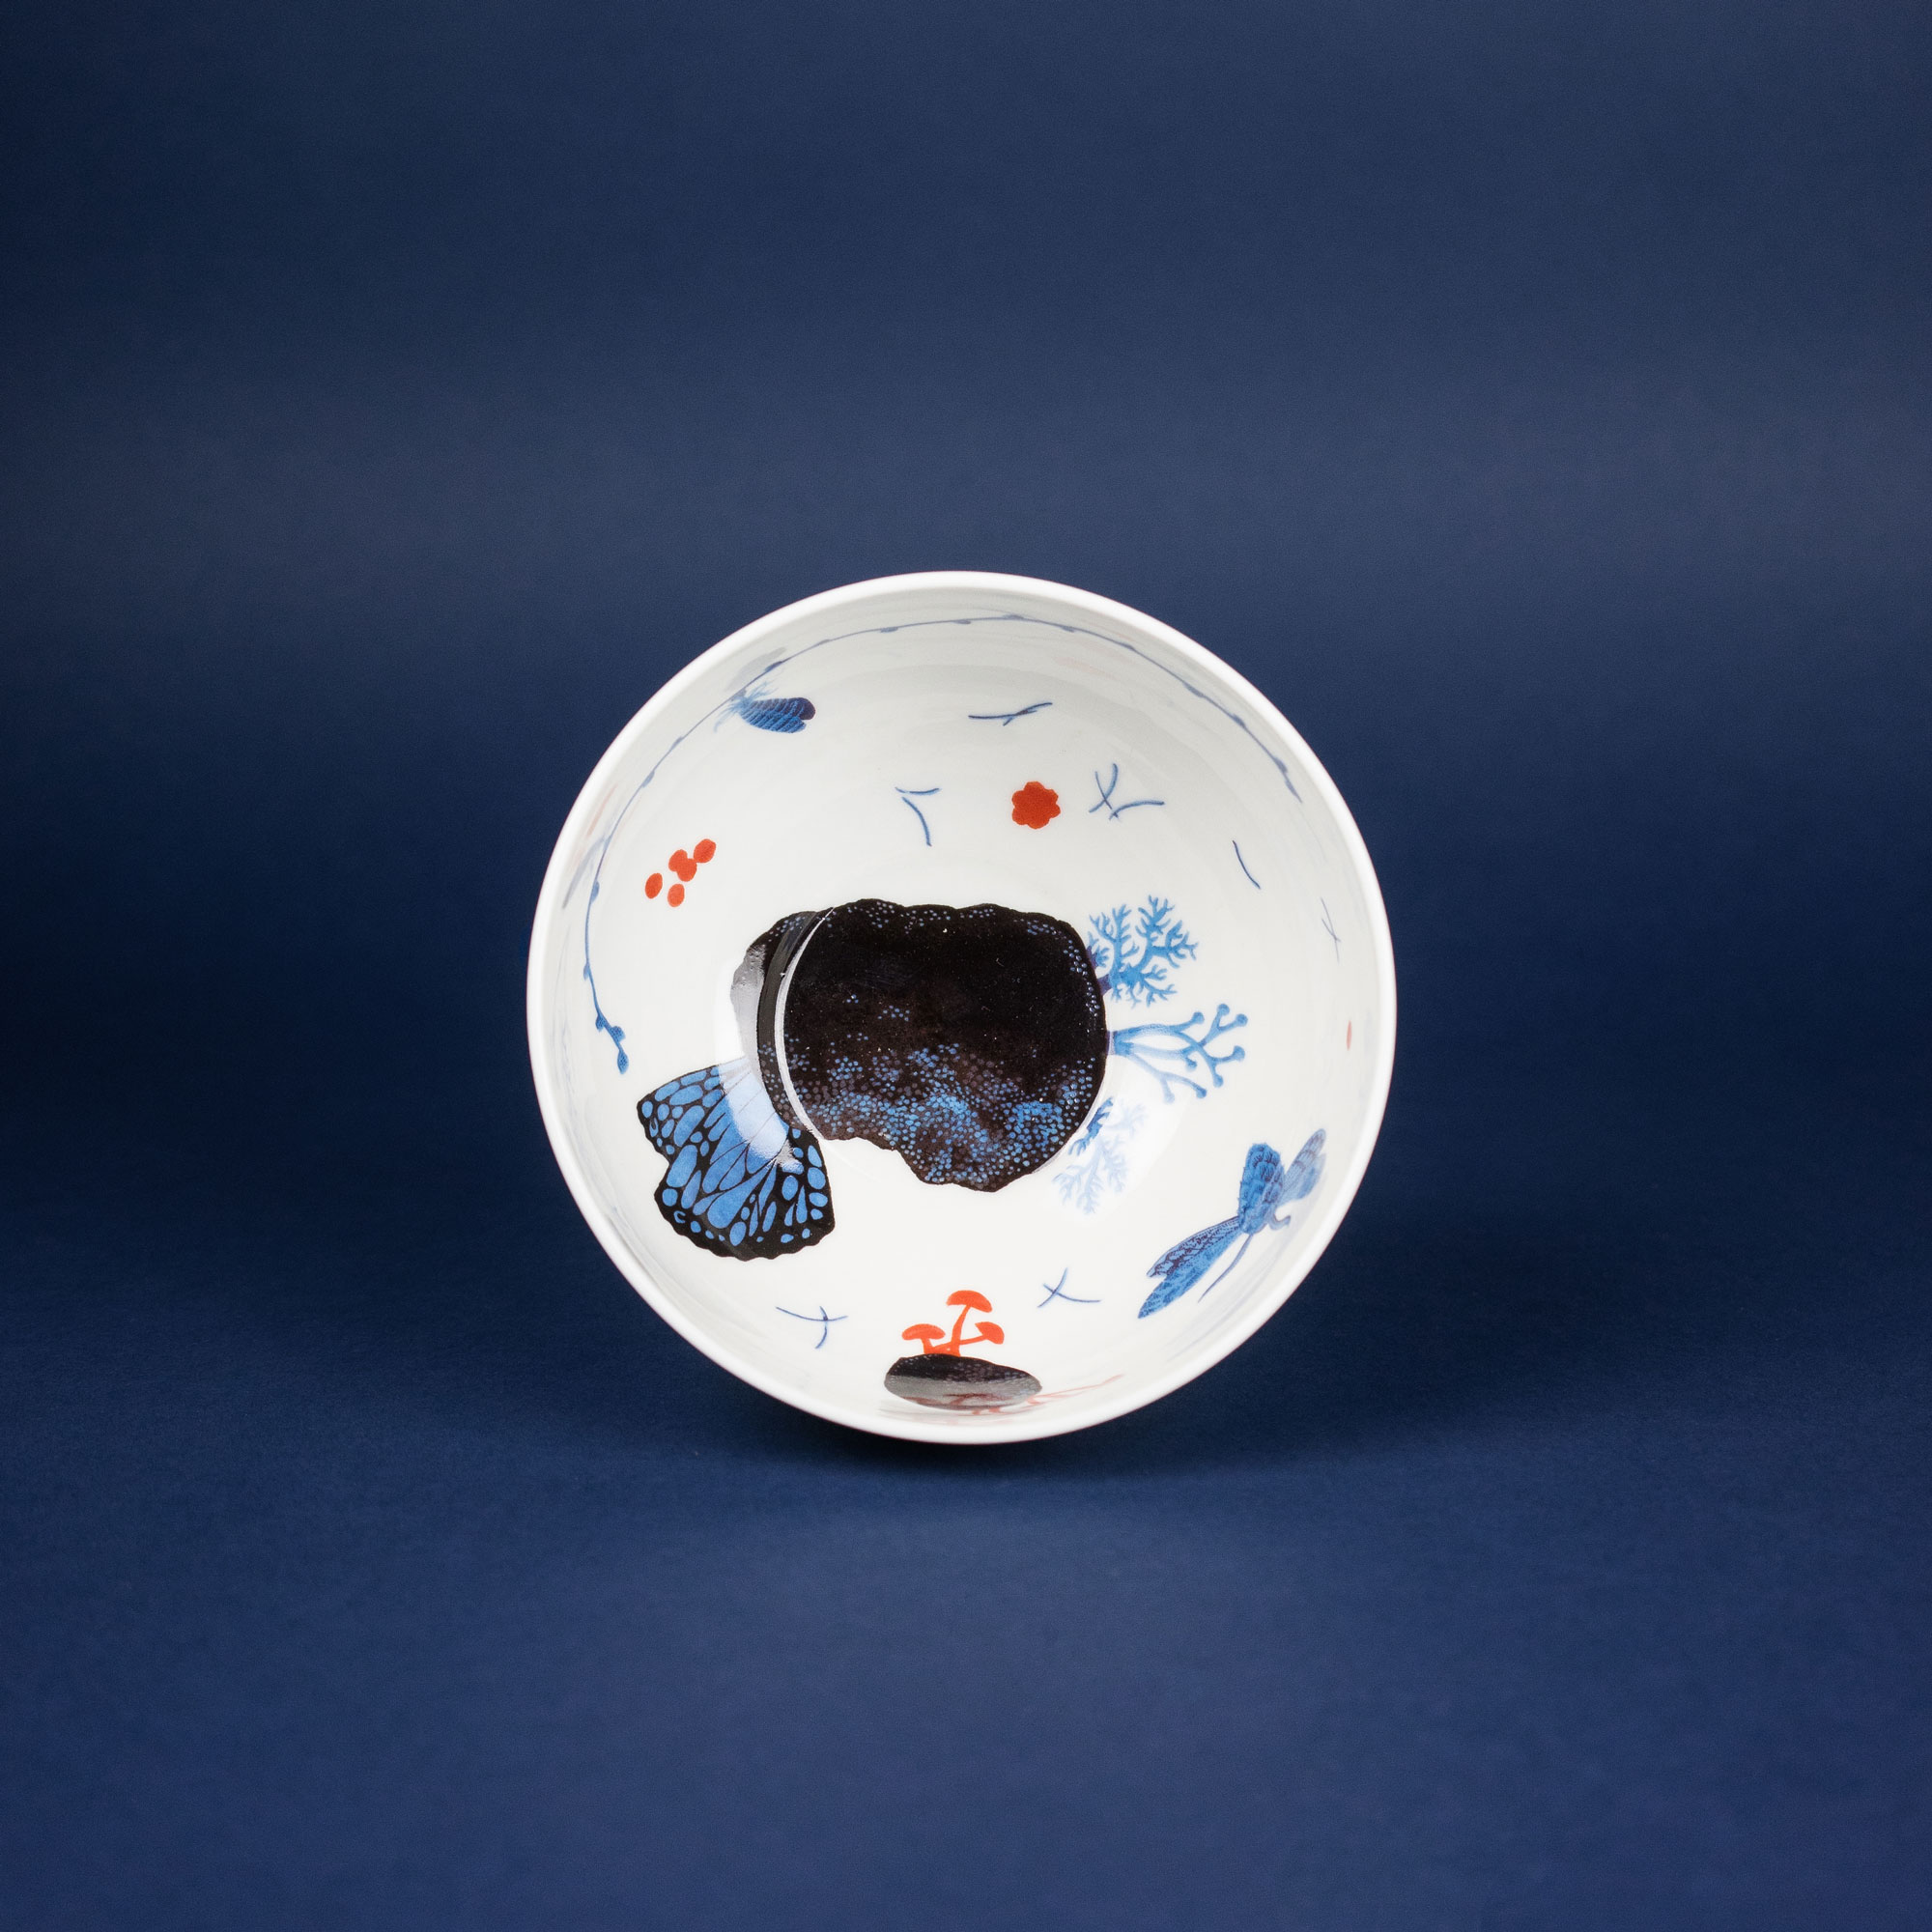 Colourful porcelain bowl by Krehky